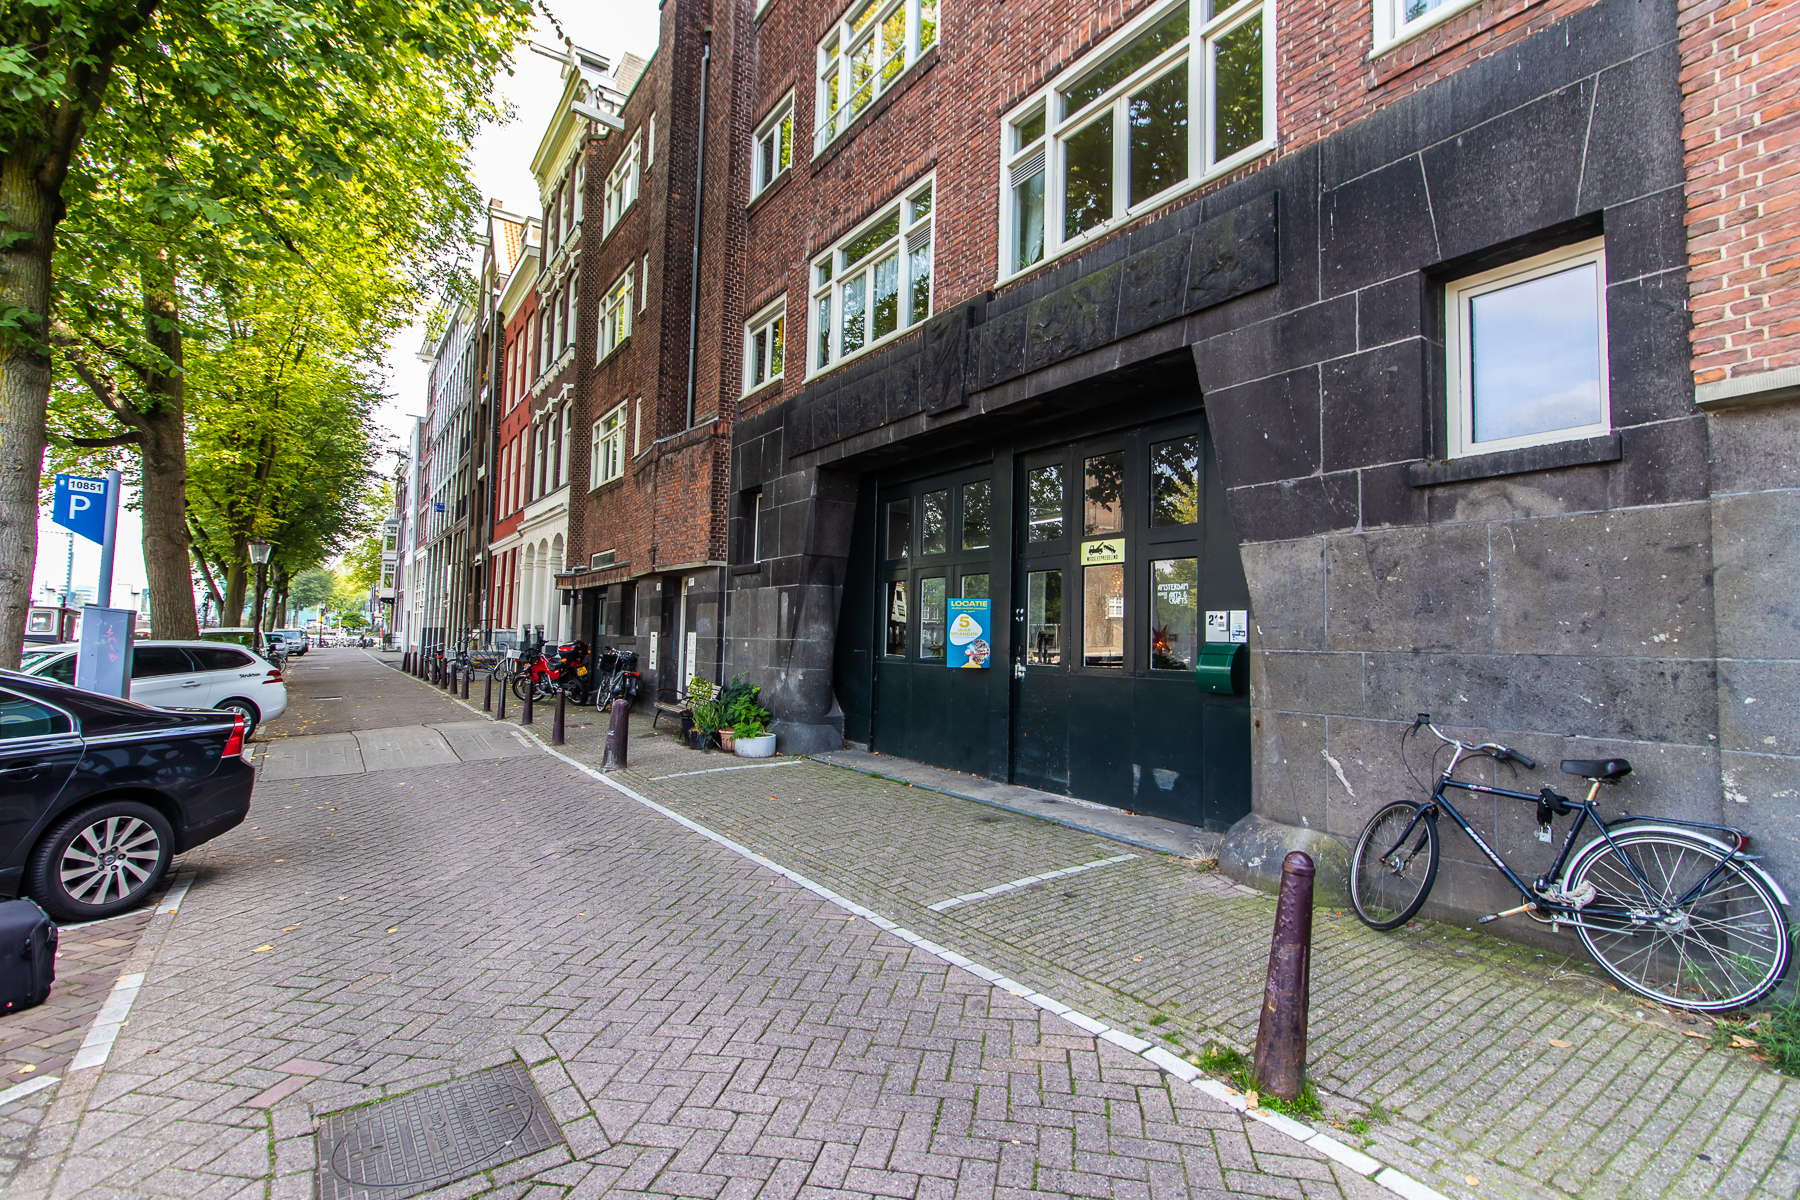 Rent office space Oudeschans 21, Amsterdam (17)